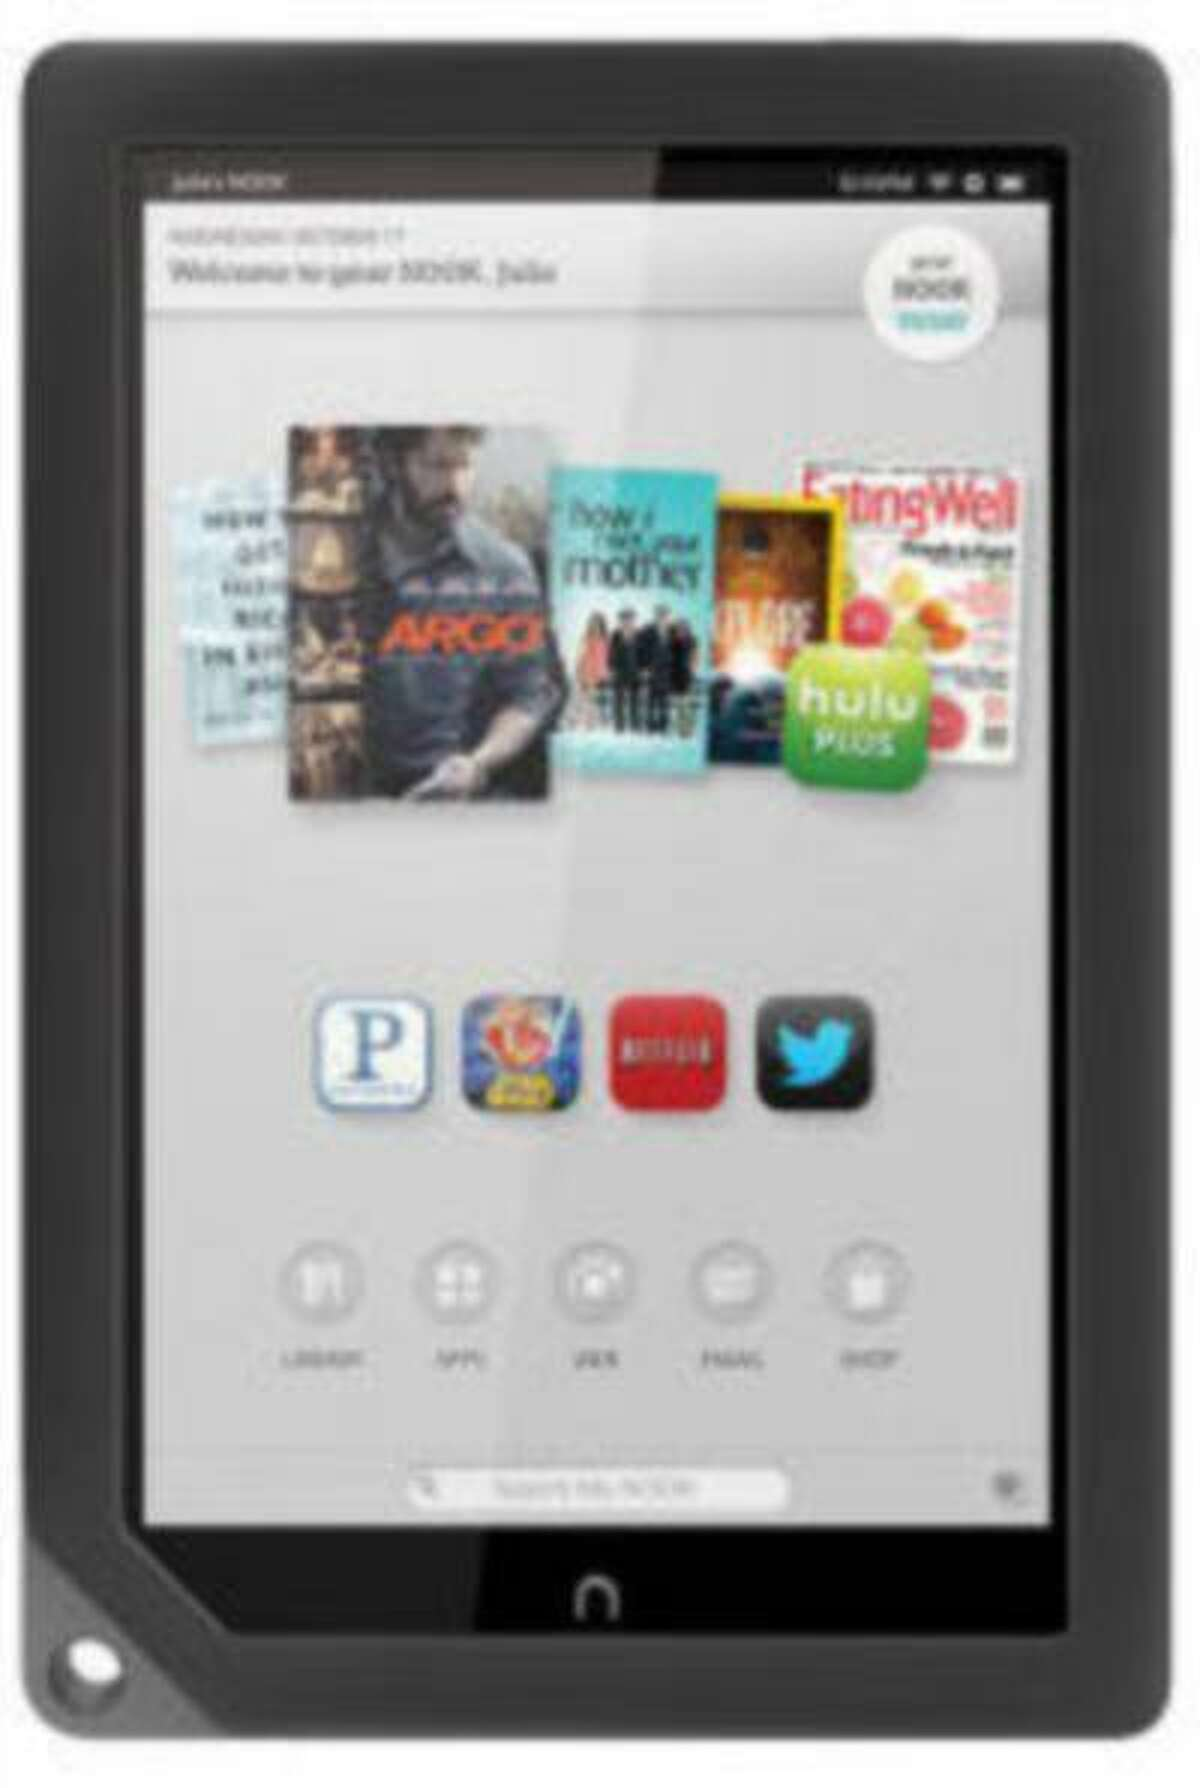 Barnes & Noble's Nook HD+ tablet